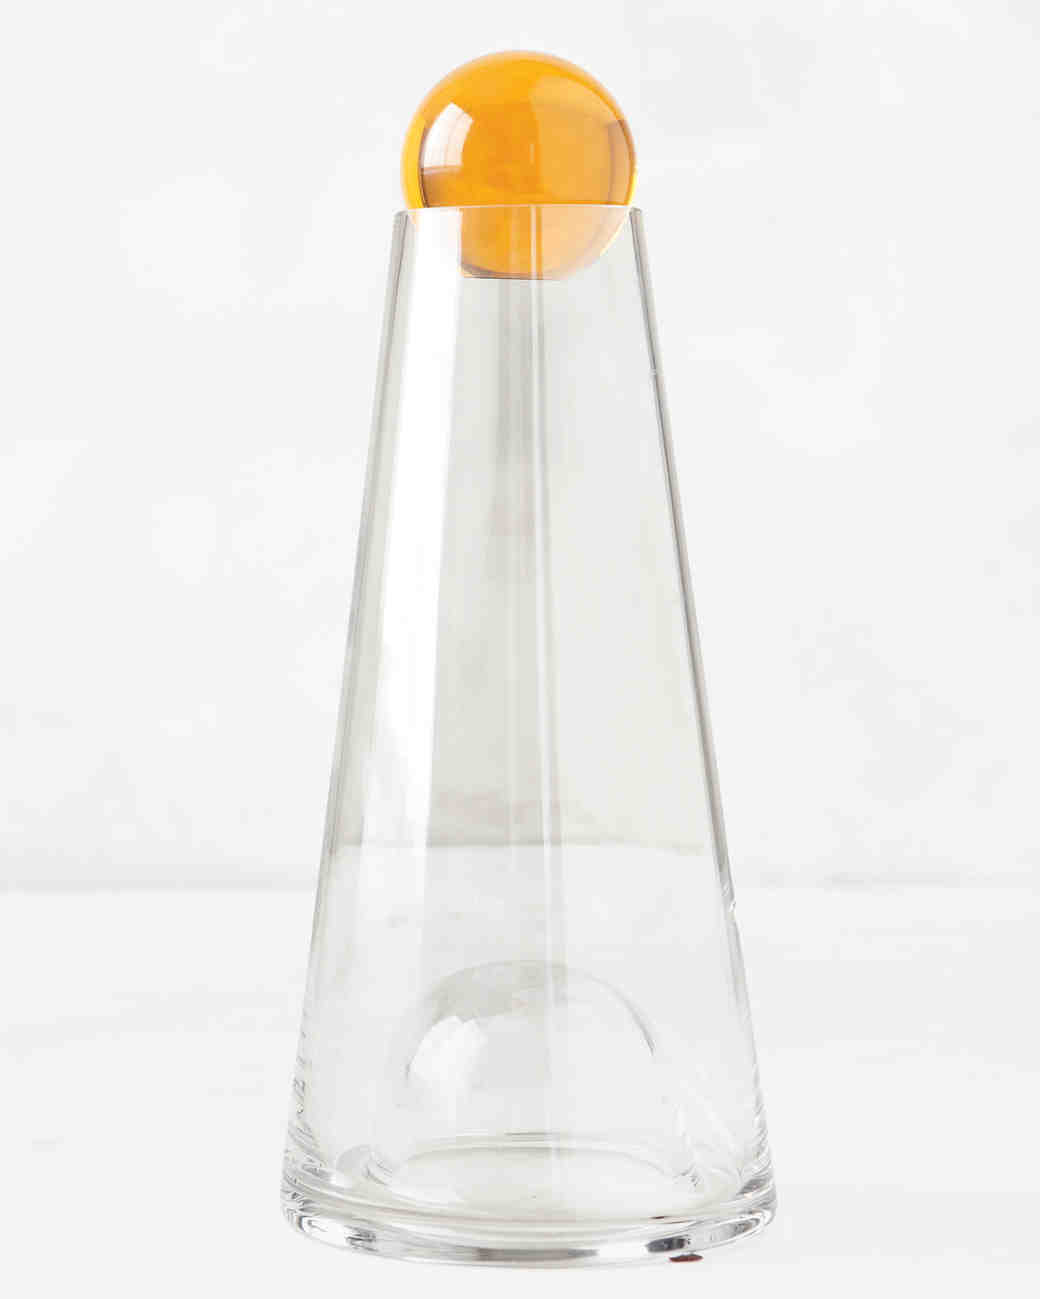 design-house-carafe-mwd108187.jpg